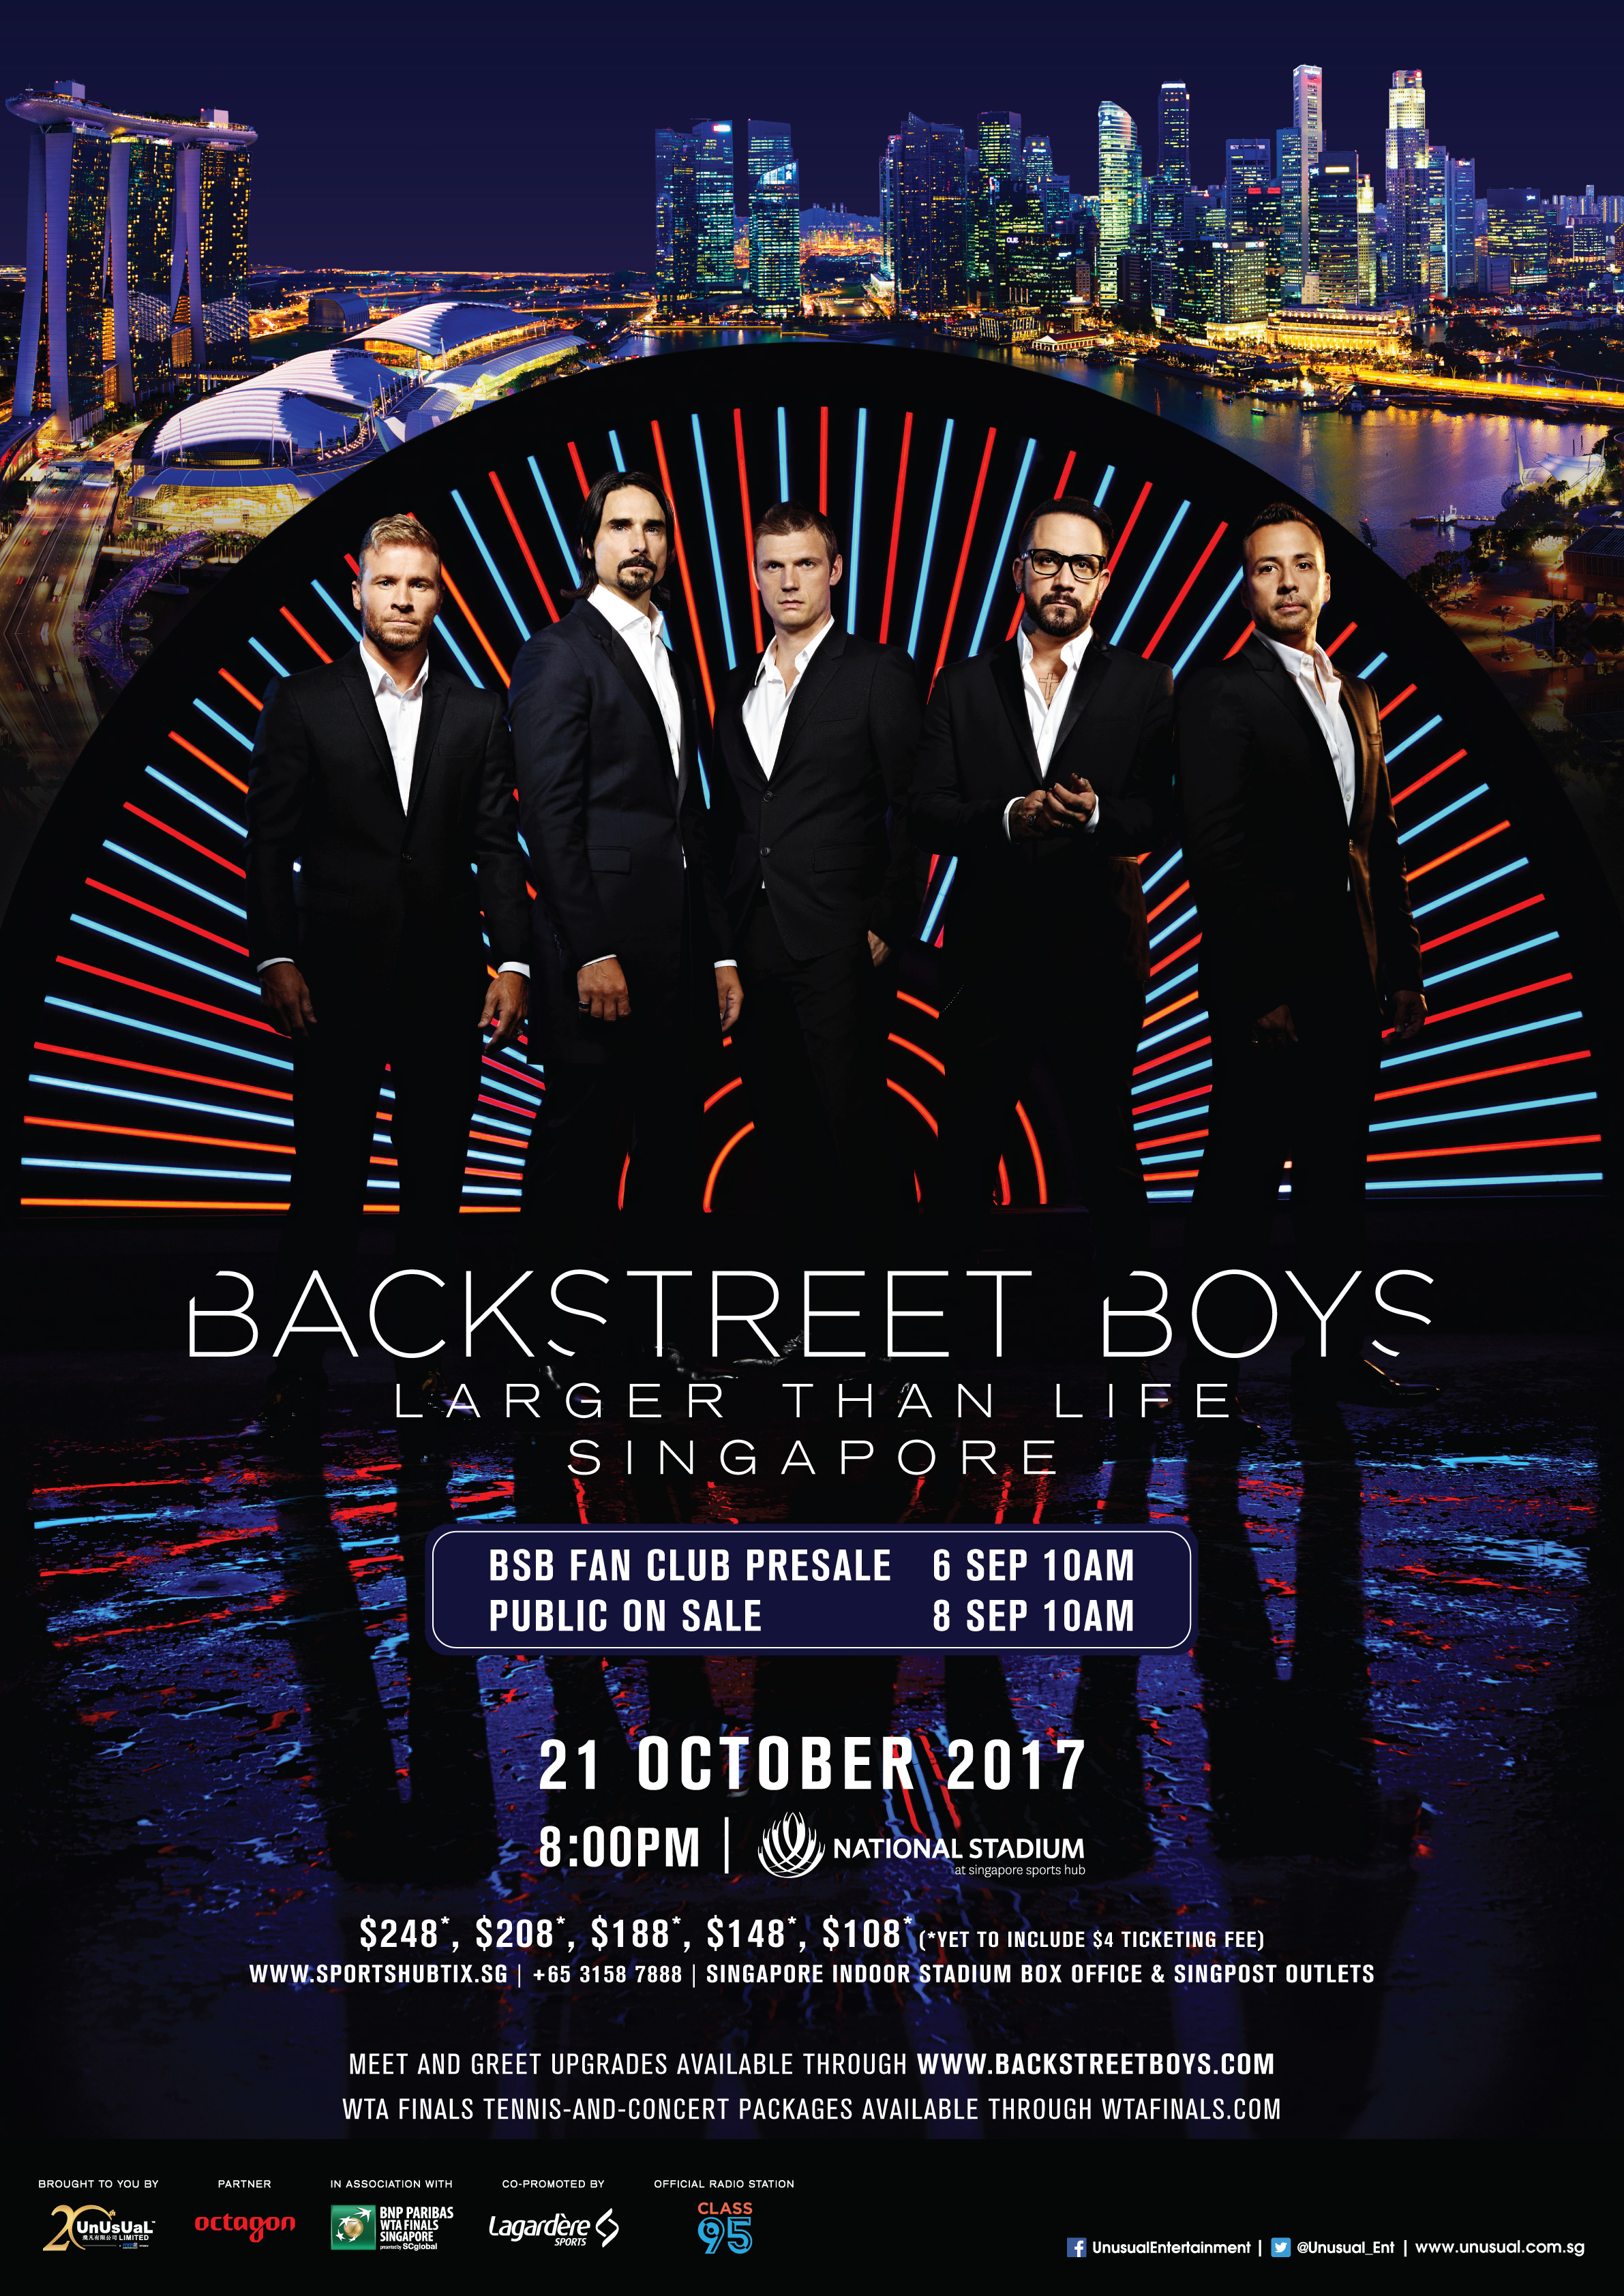 Backstreet Boys to hold Singapore concert on October 21, one night only in Asia - Alvinology